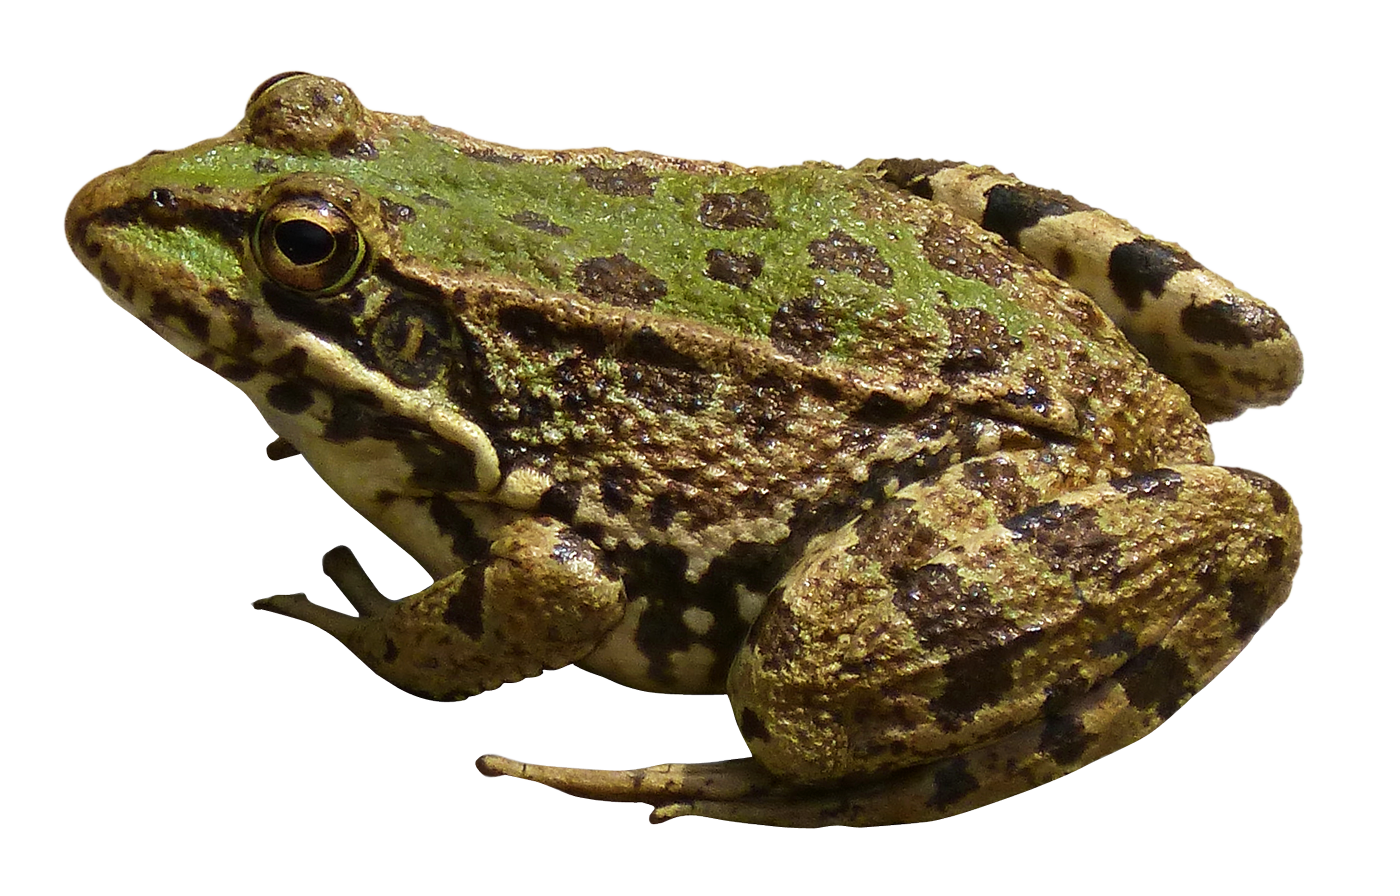 Frogs Png - Frog PNG